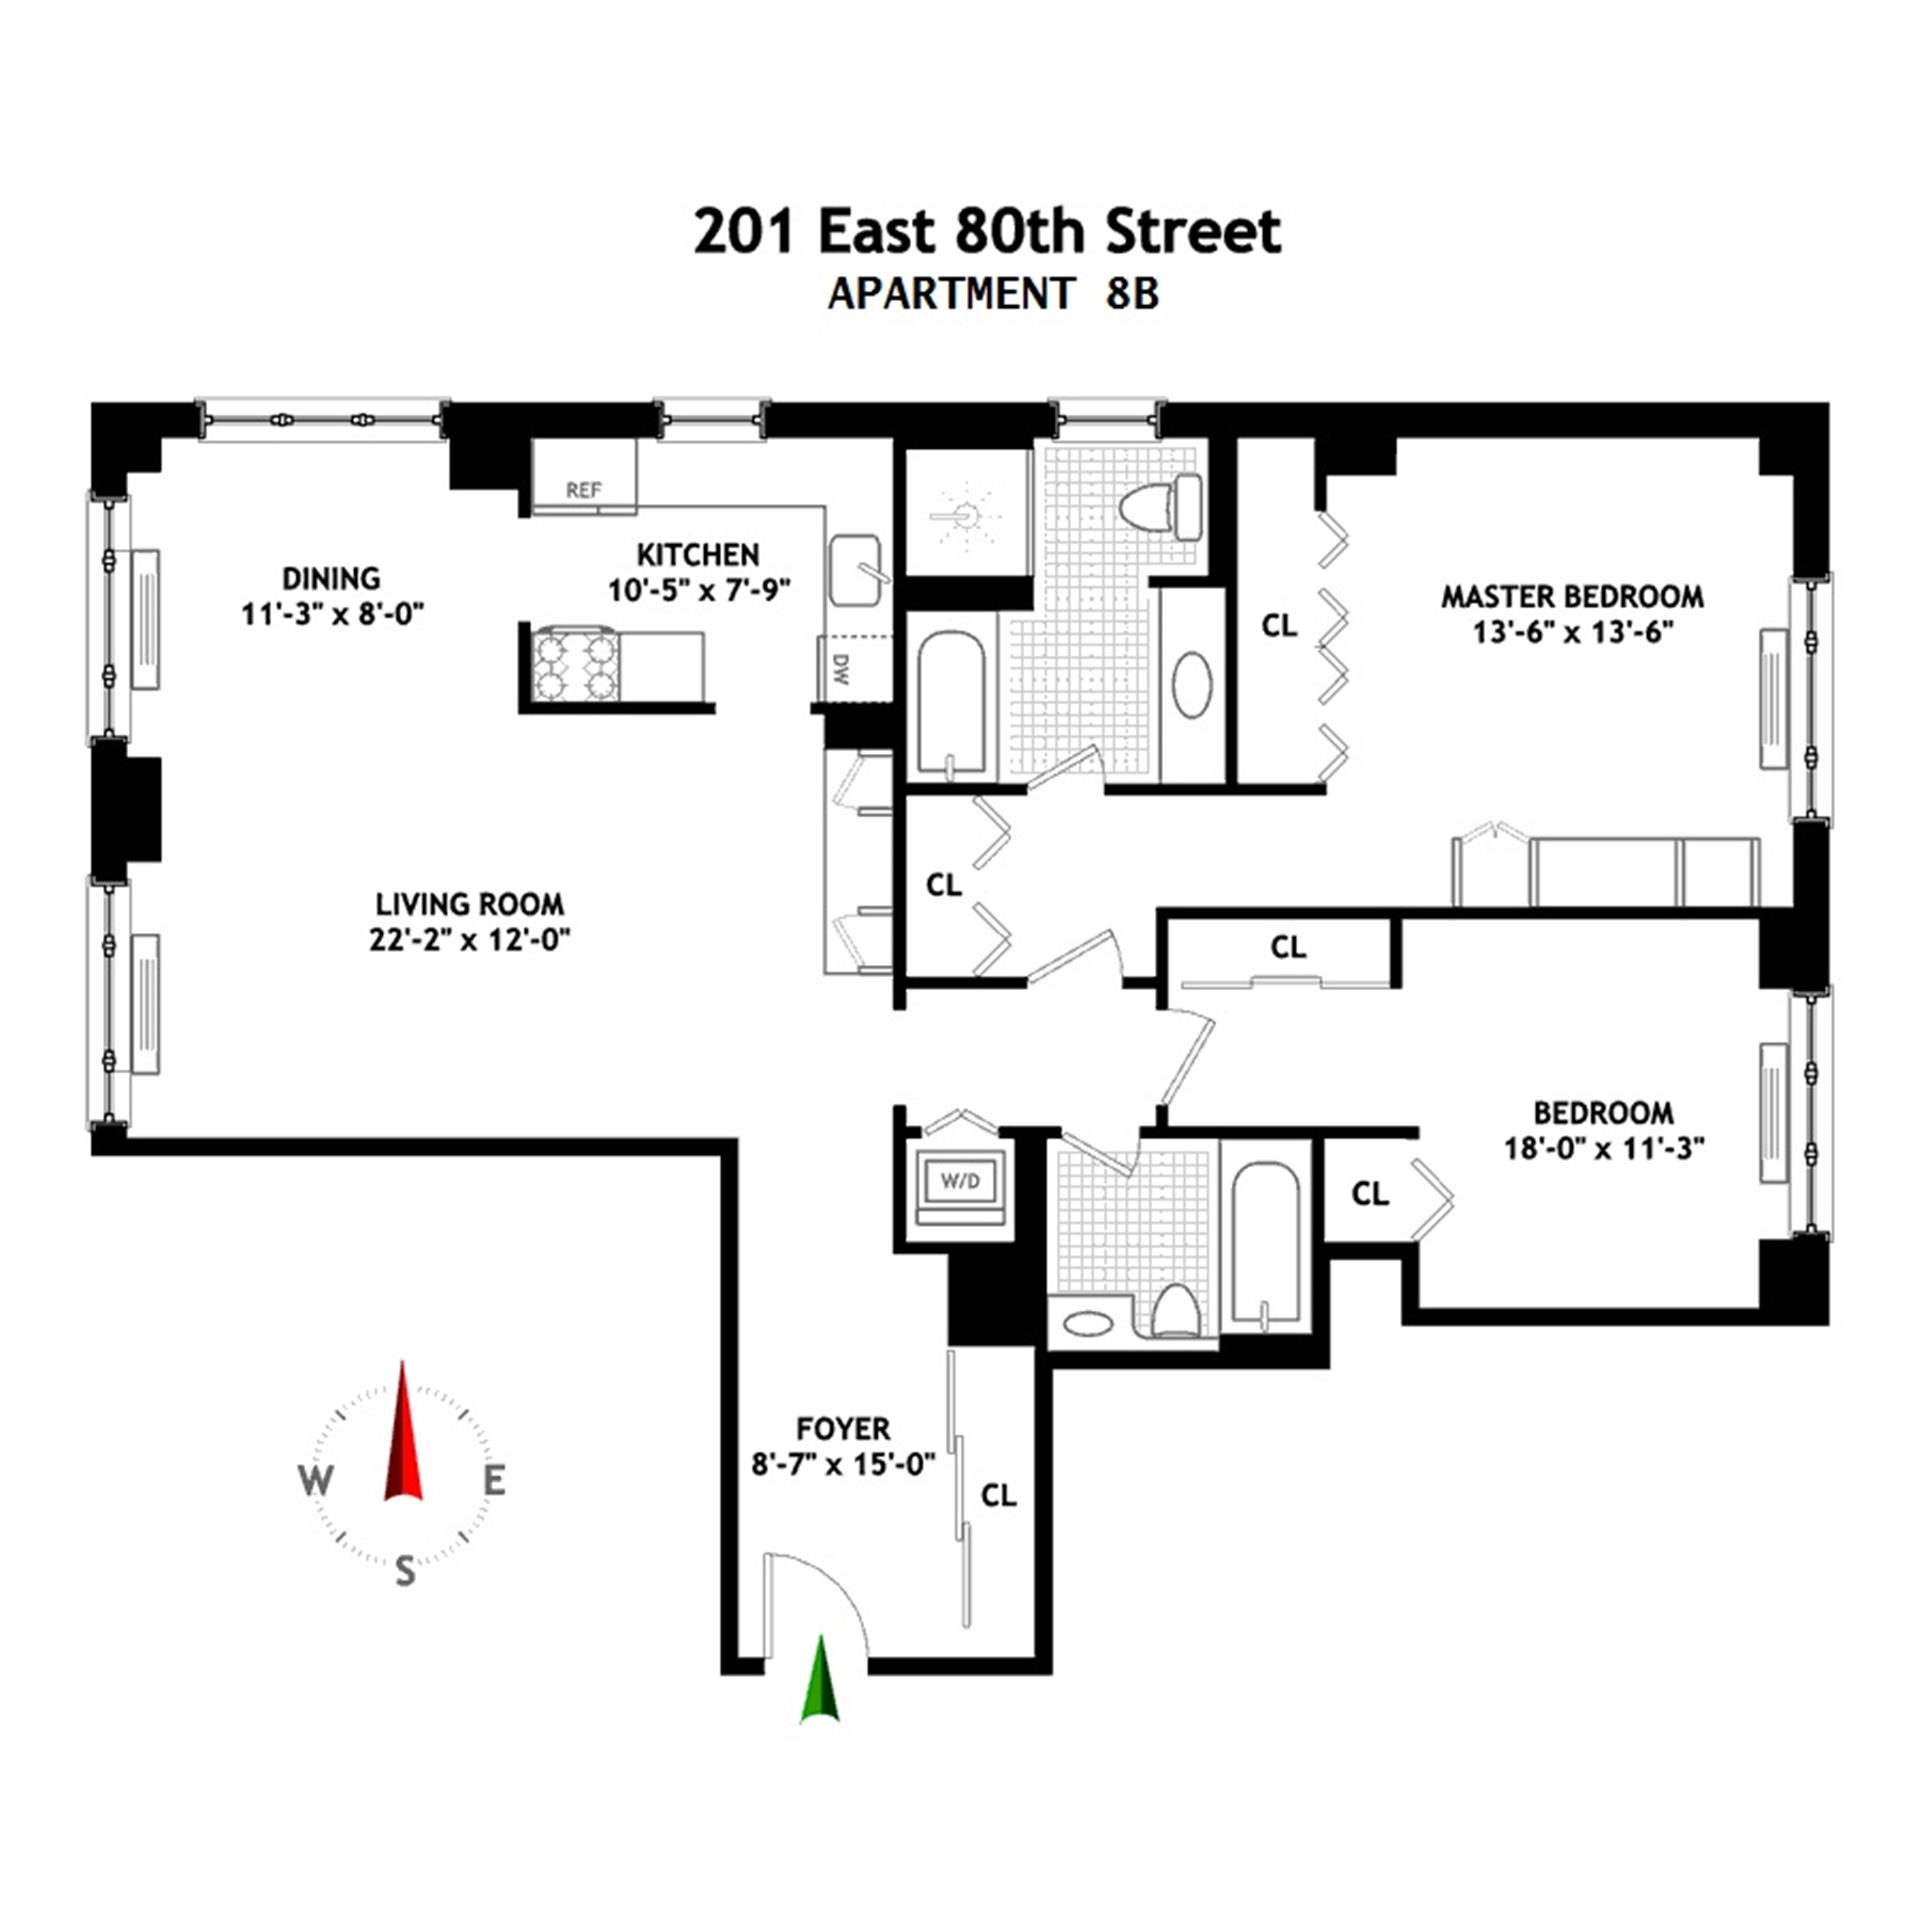 Floor plan of The Richmond, 201 East 80th St, 8B - Upper East Side, New York